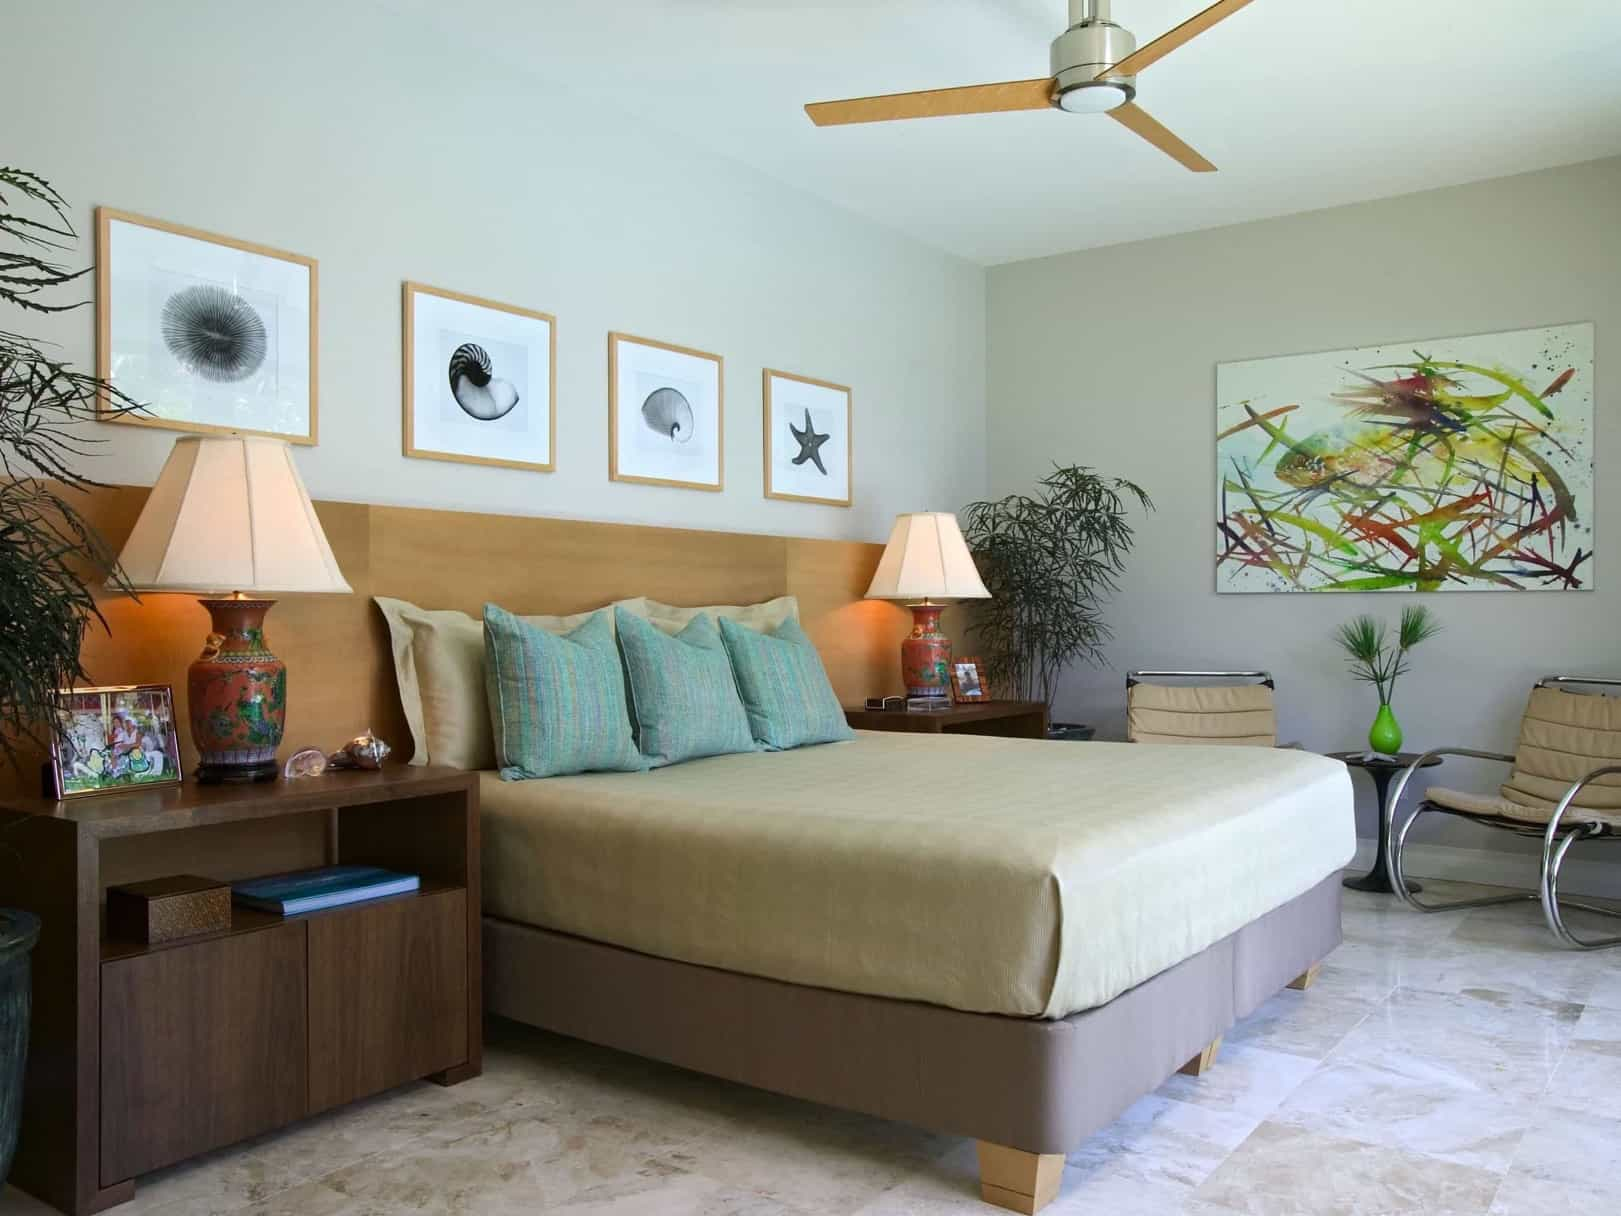 Featured Image of Midcentury Modern Coastal Themed Bedroom